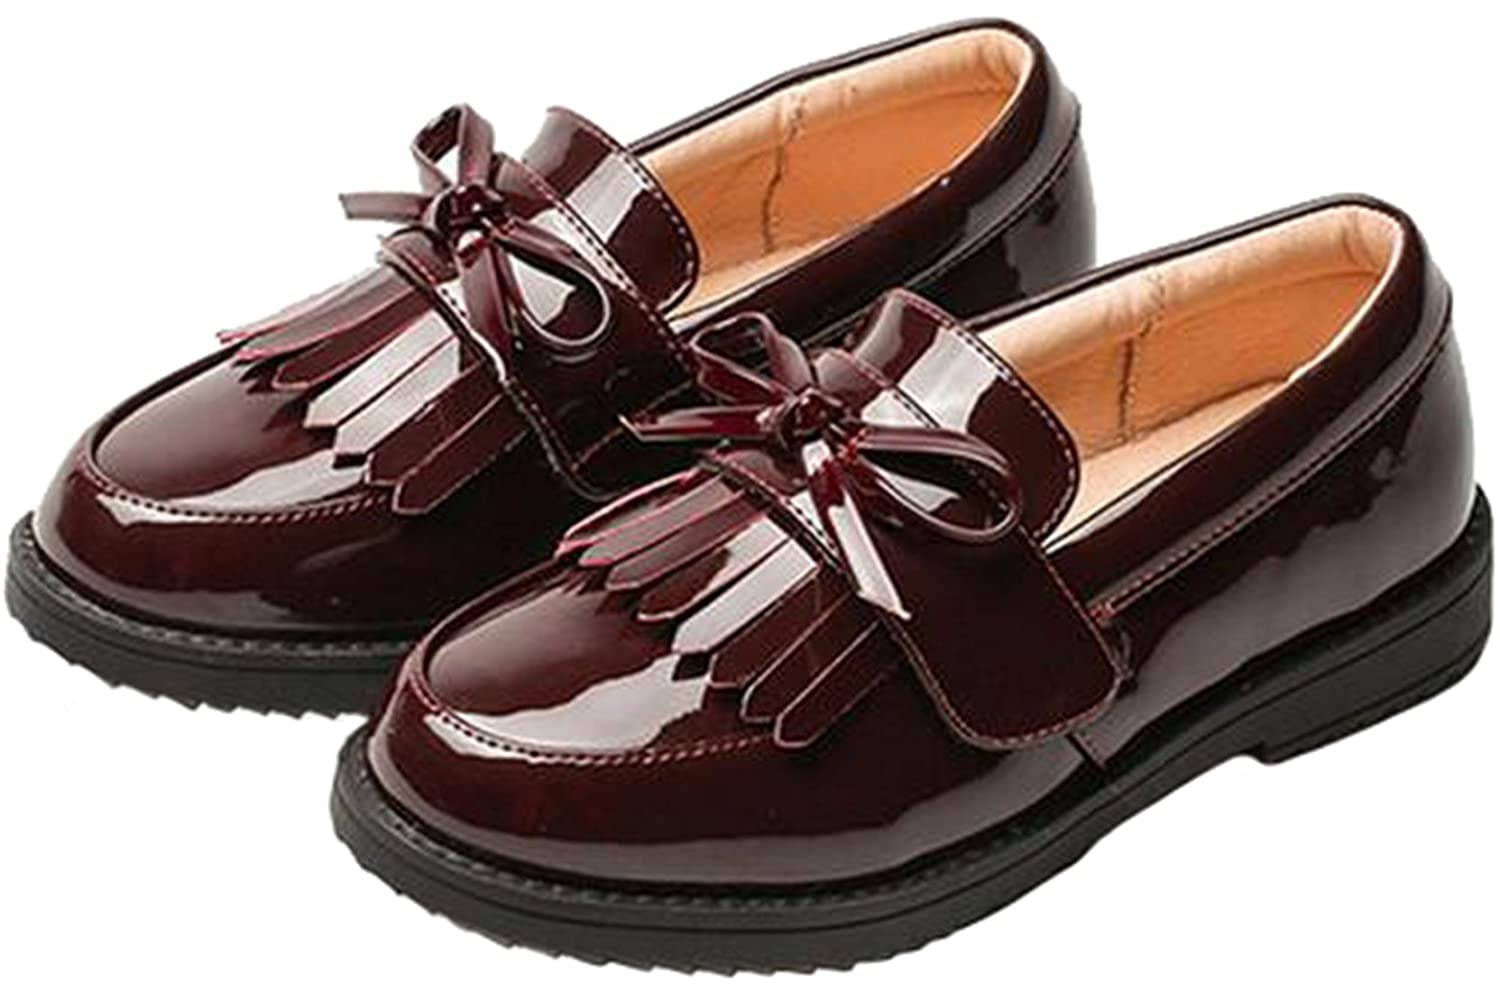 PPXID Girl's British Style School Uniform Shoes Princess Performance Oxford Shoes D0644